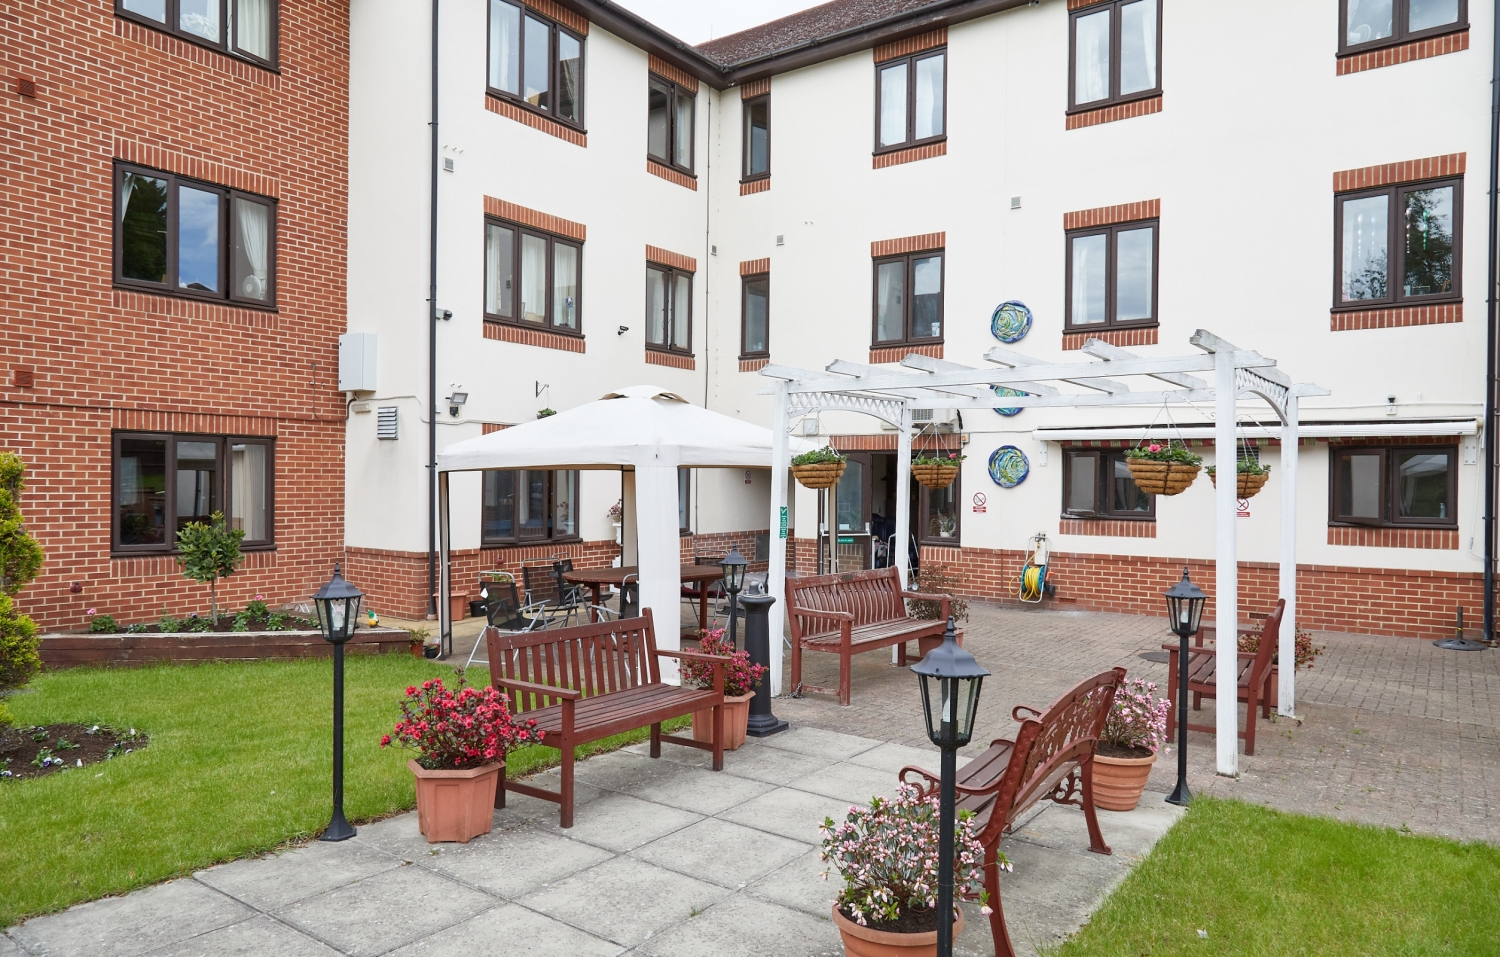 66 Park House Care Home Kenton